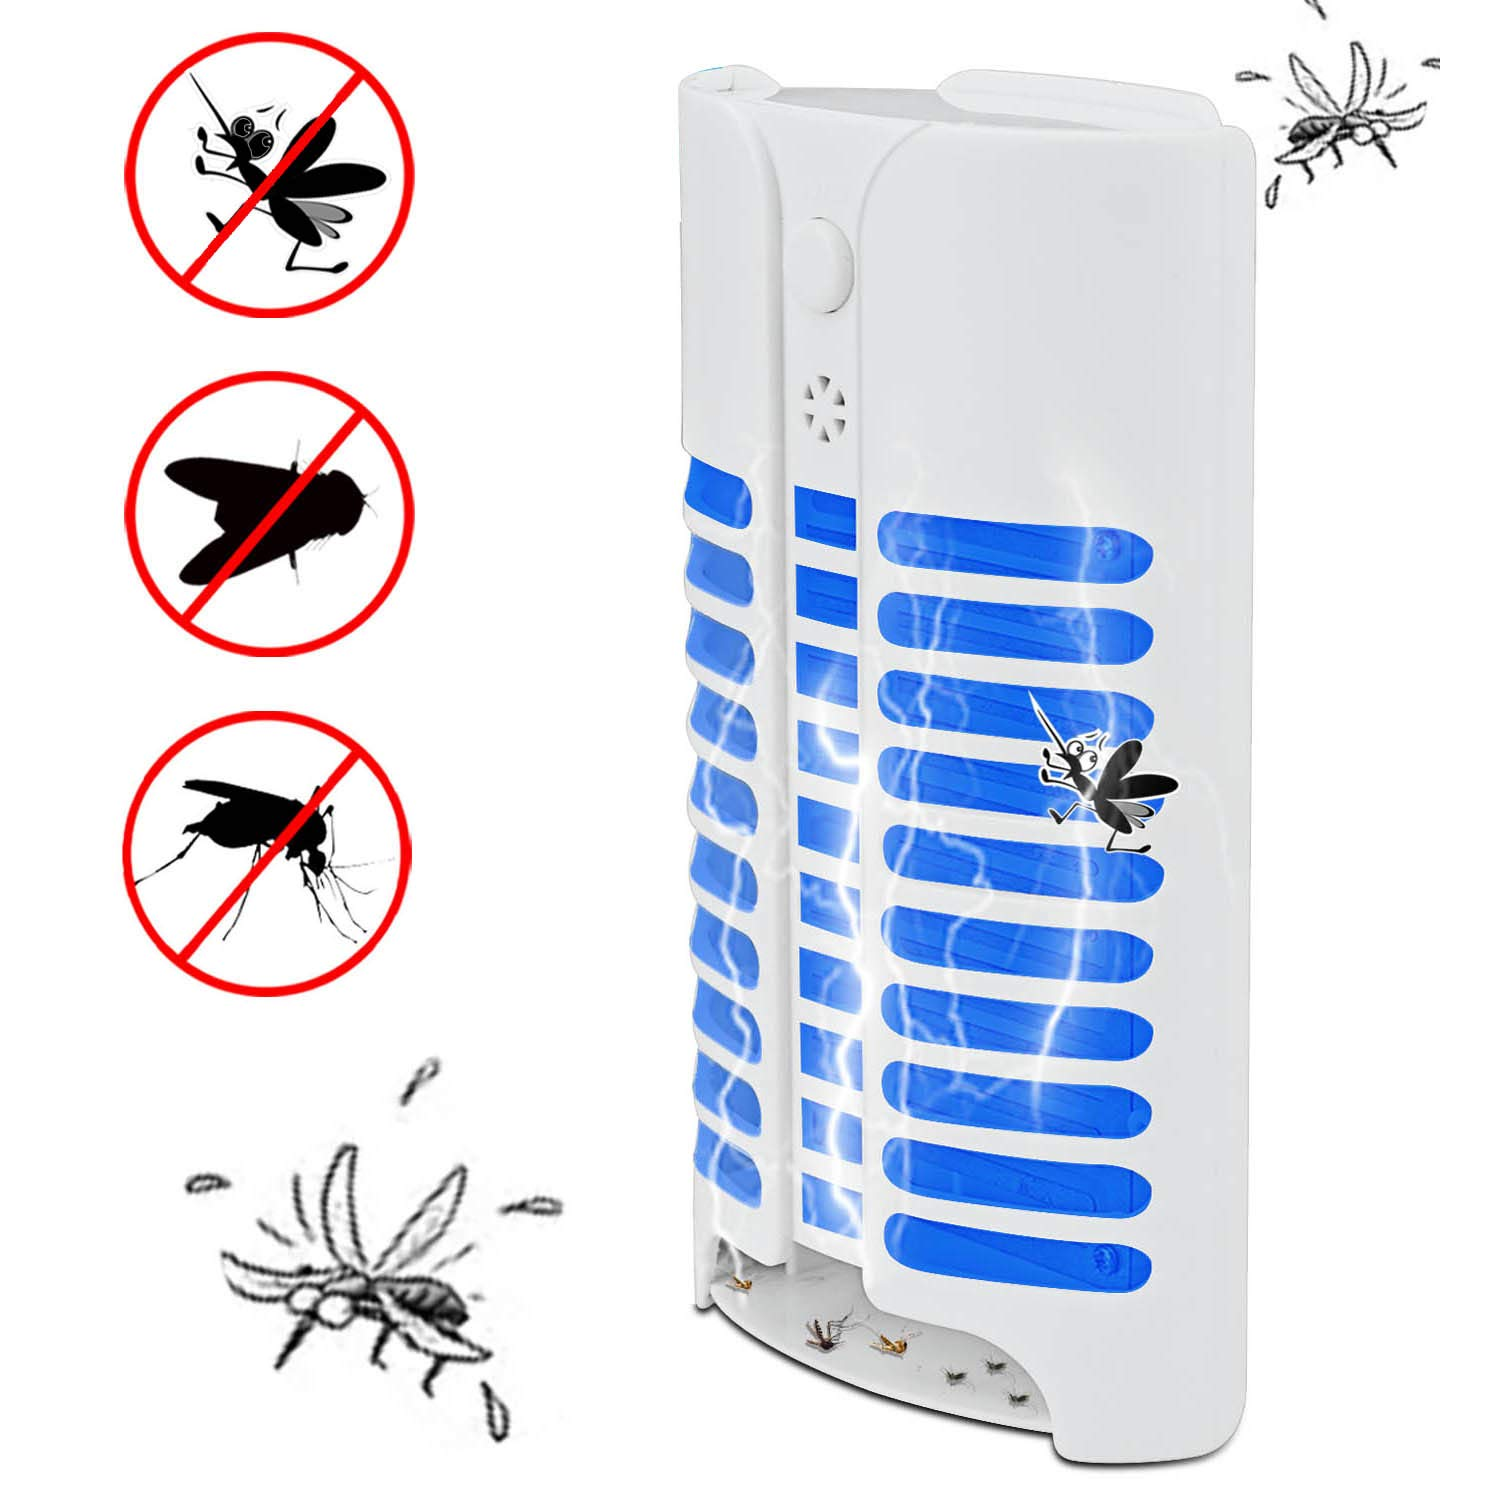 Htheone Electric Indoor Bug Zapper, Mosquito Killer, Insect and Fly Zapper Catcher Killer Trap with UV Night Sensor Light for Home, Office and Patio Indoor Use by Htheone